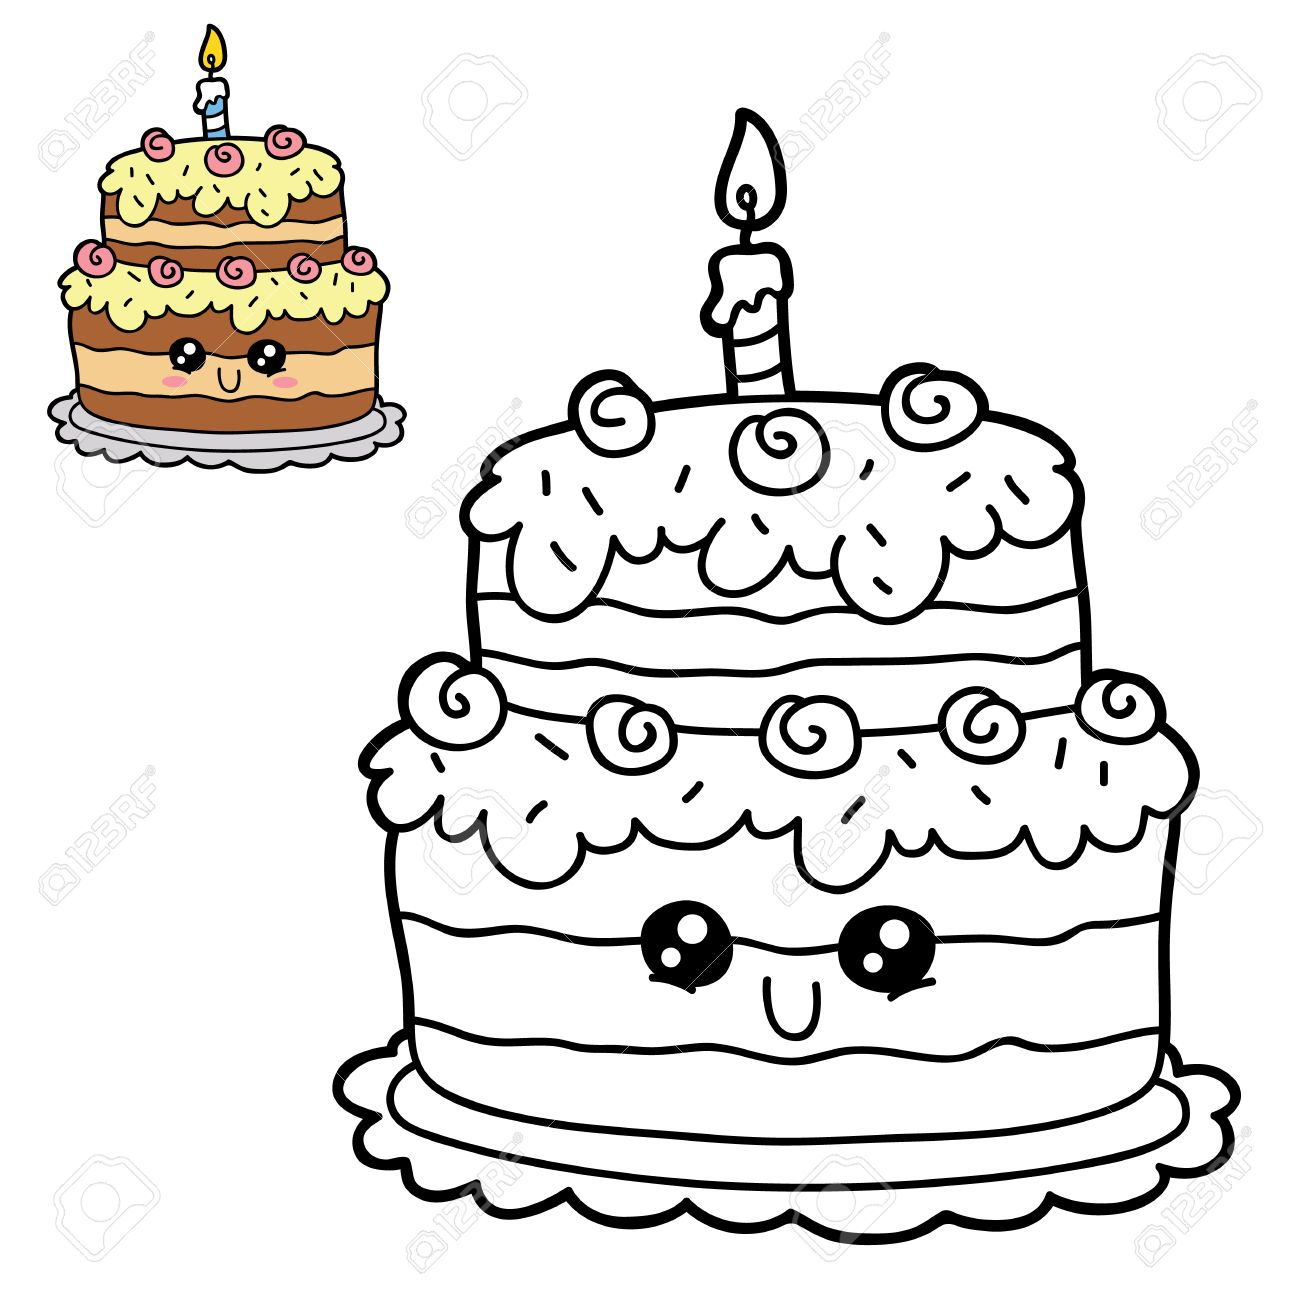 vector illustration coloring page of happy cartoon birthday cake for children coloring and scrap book - Feliz Cumpleanos Coloring Pages